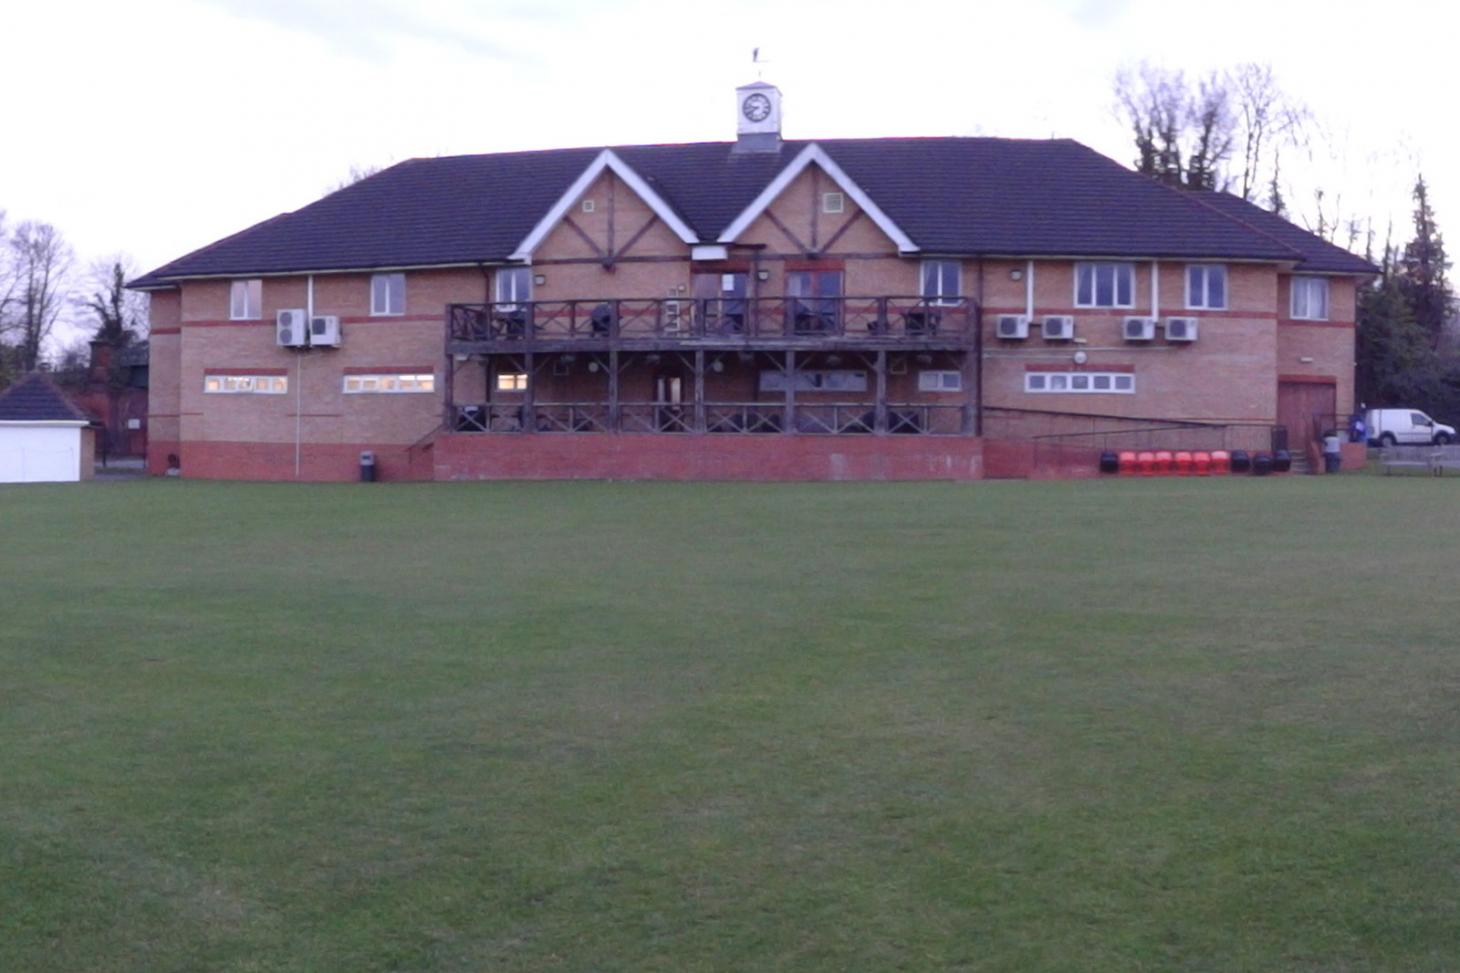 Holtwhites Sports and Social Club 11 a side | Grass football pitch